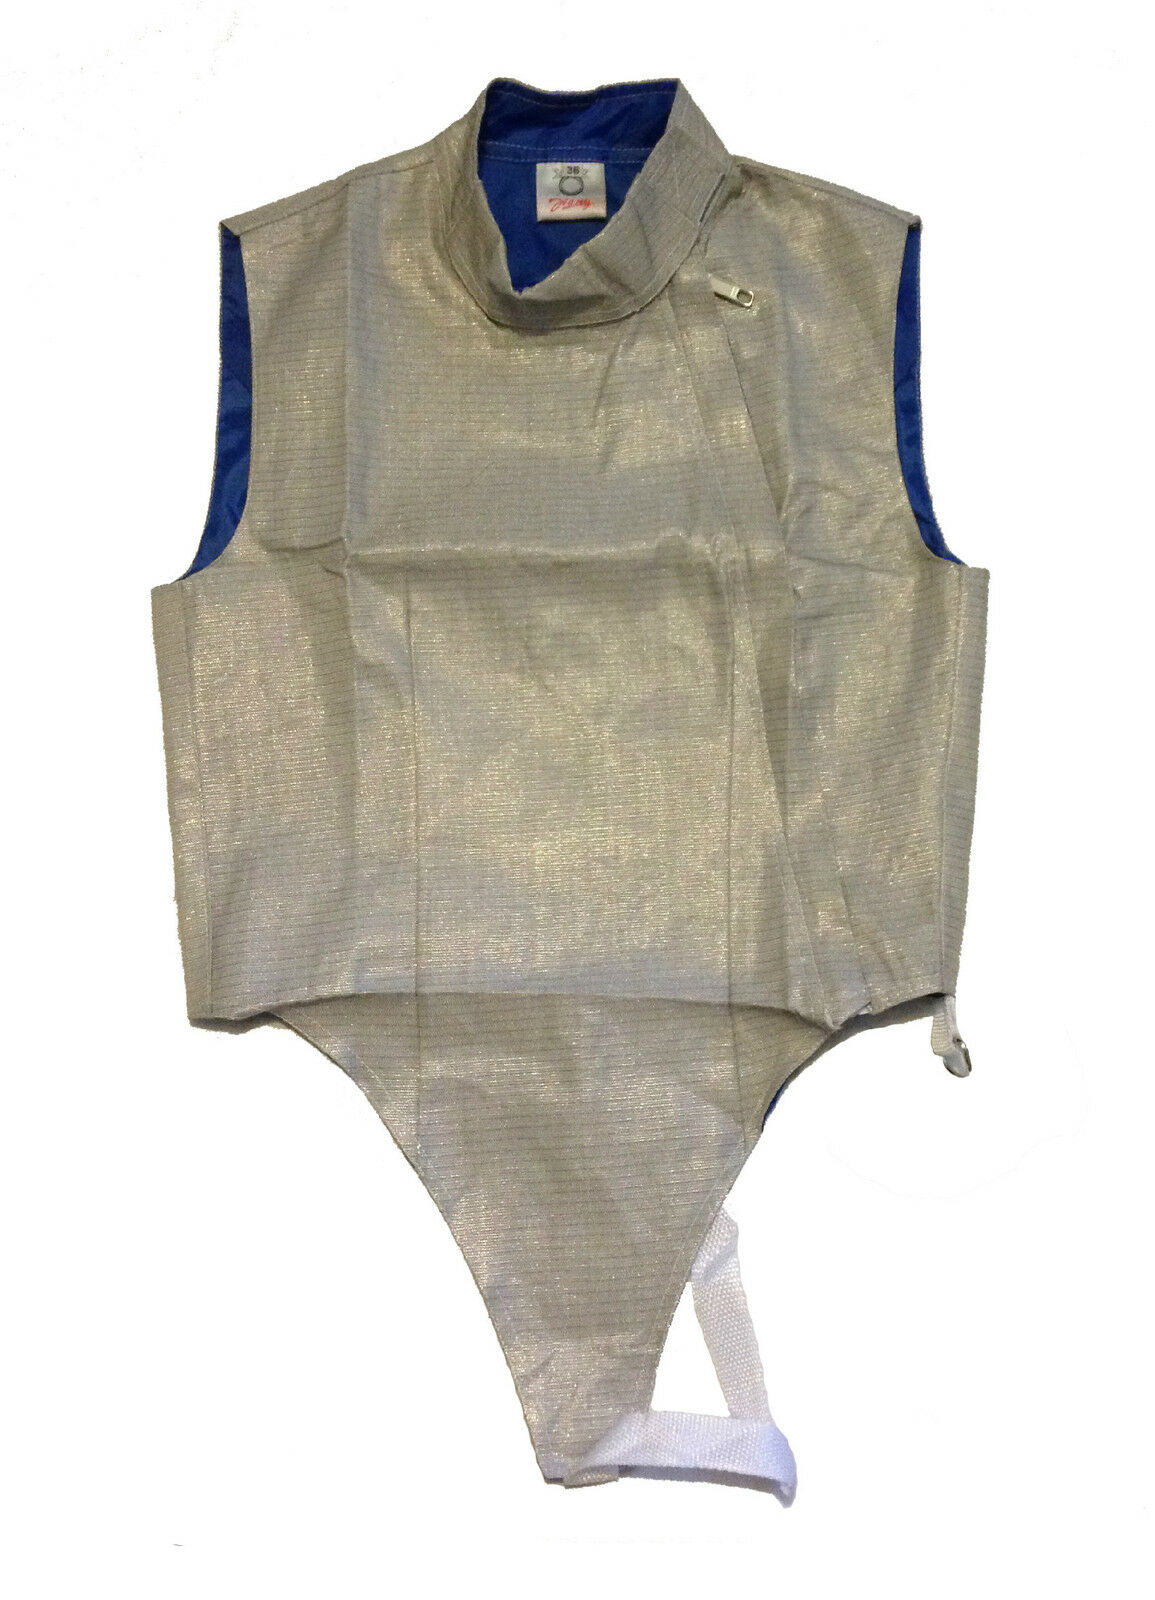 Fencing Electric Women's Foil Lame R H 350 NW CE Level 1 US Size 33 -34